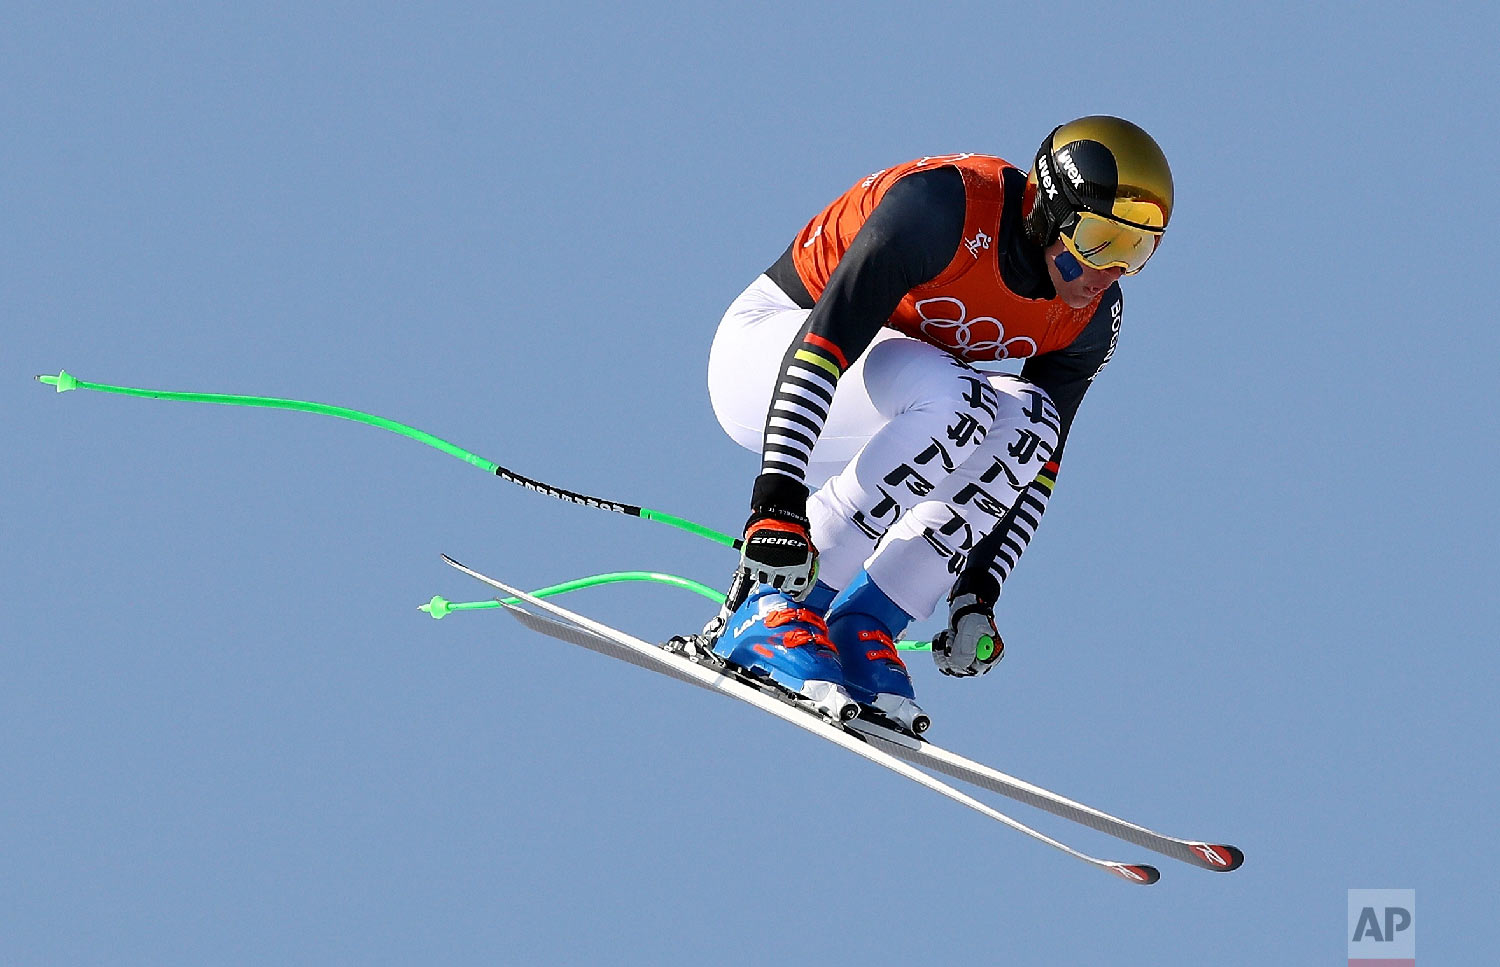 Germany's Thomas Dressen makes a jump in Men's Downhill training at the 2018 Winter Olympics in Jeongseon, South Korea, Thursday, Feb. 8, 2018. (AP Photo/Alessandro Trovati)